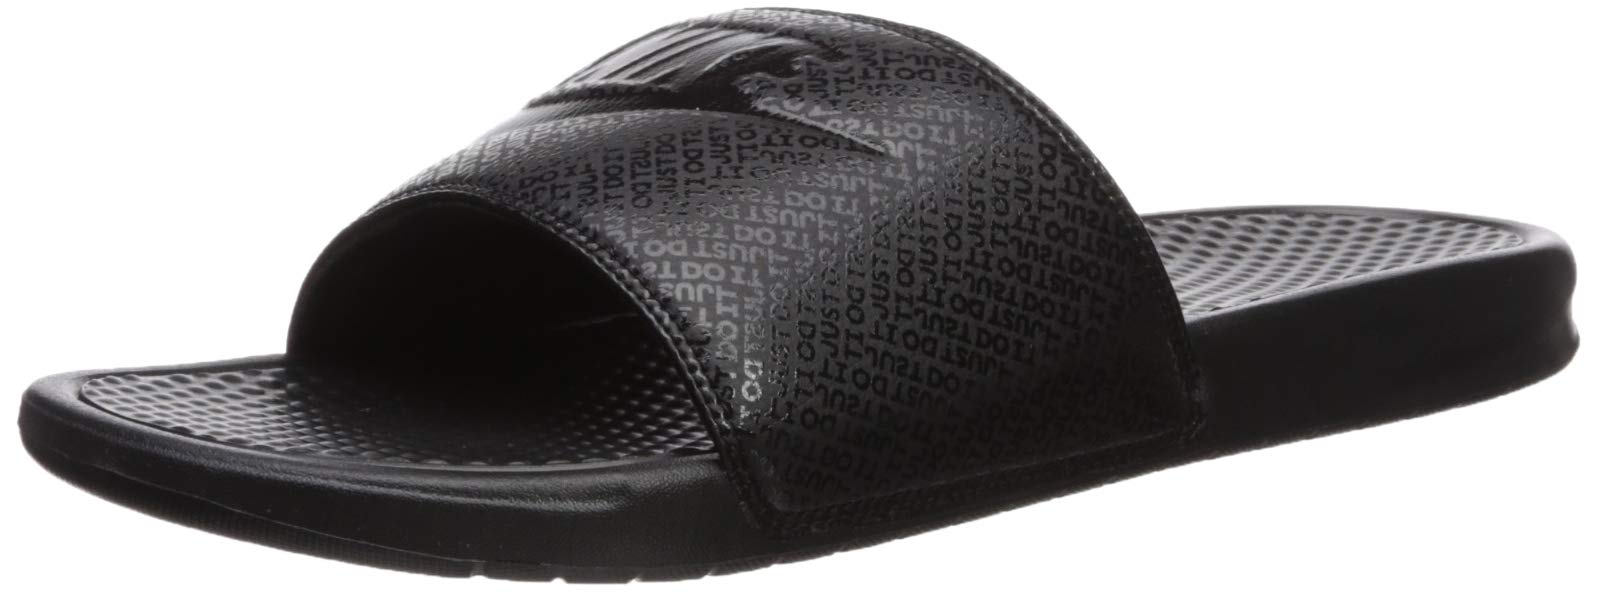 Nike Men's Benassi Just Do It Athletic Sandal, Black, 11 D(M) US by Nike